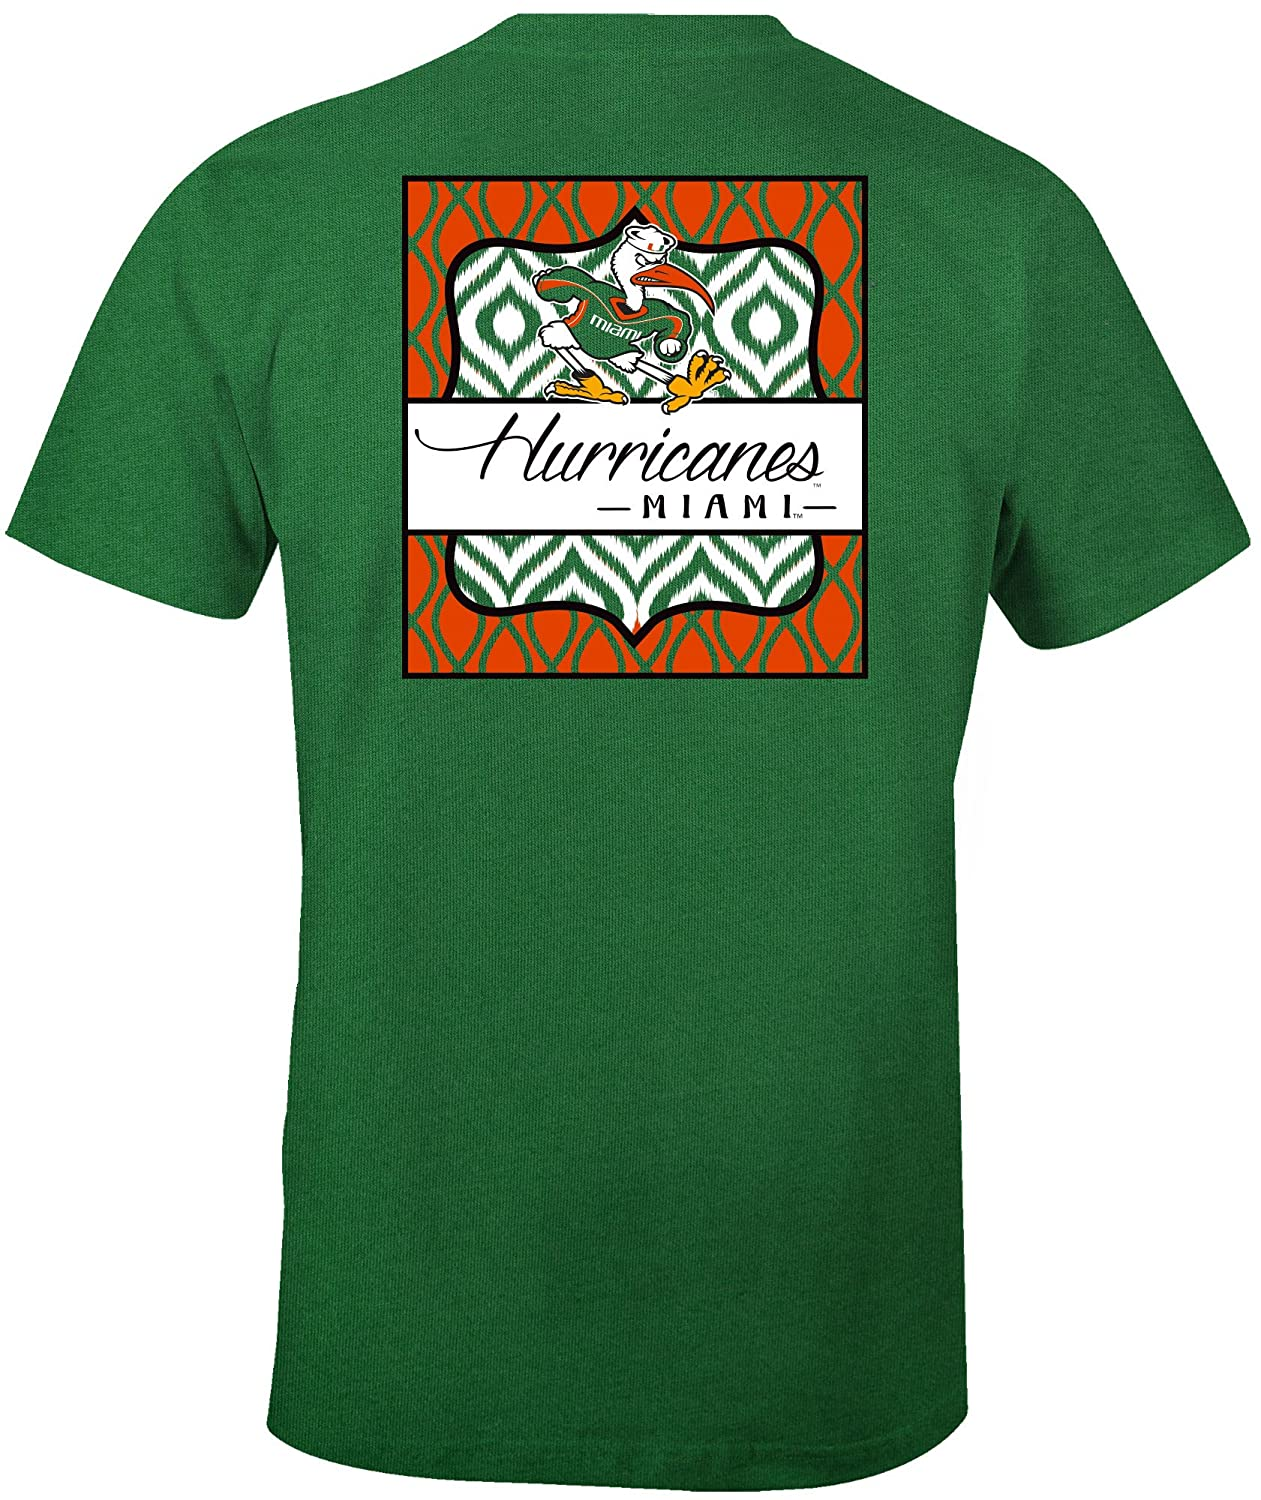 NCAA Miami Hurricanes Womens Double Pattern Scroll Favorite Short sleeve T-Shirt Large,Kelly